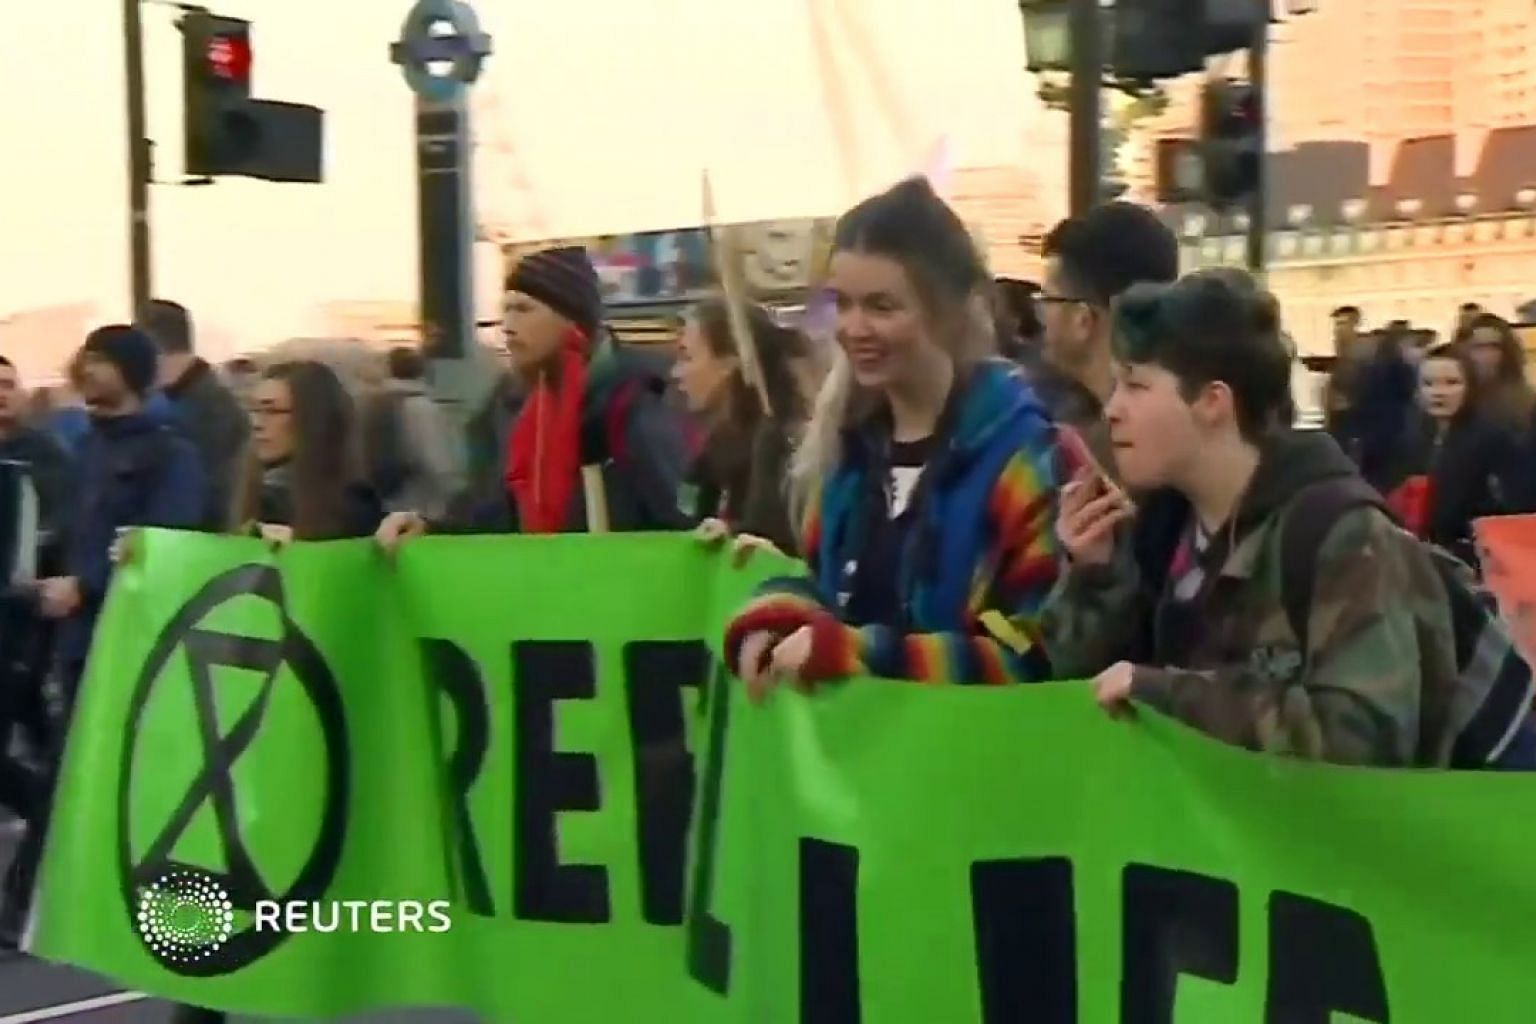 London bridges blocked by environment protest, 70 arrested